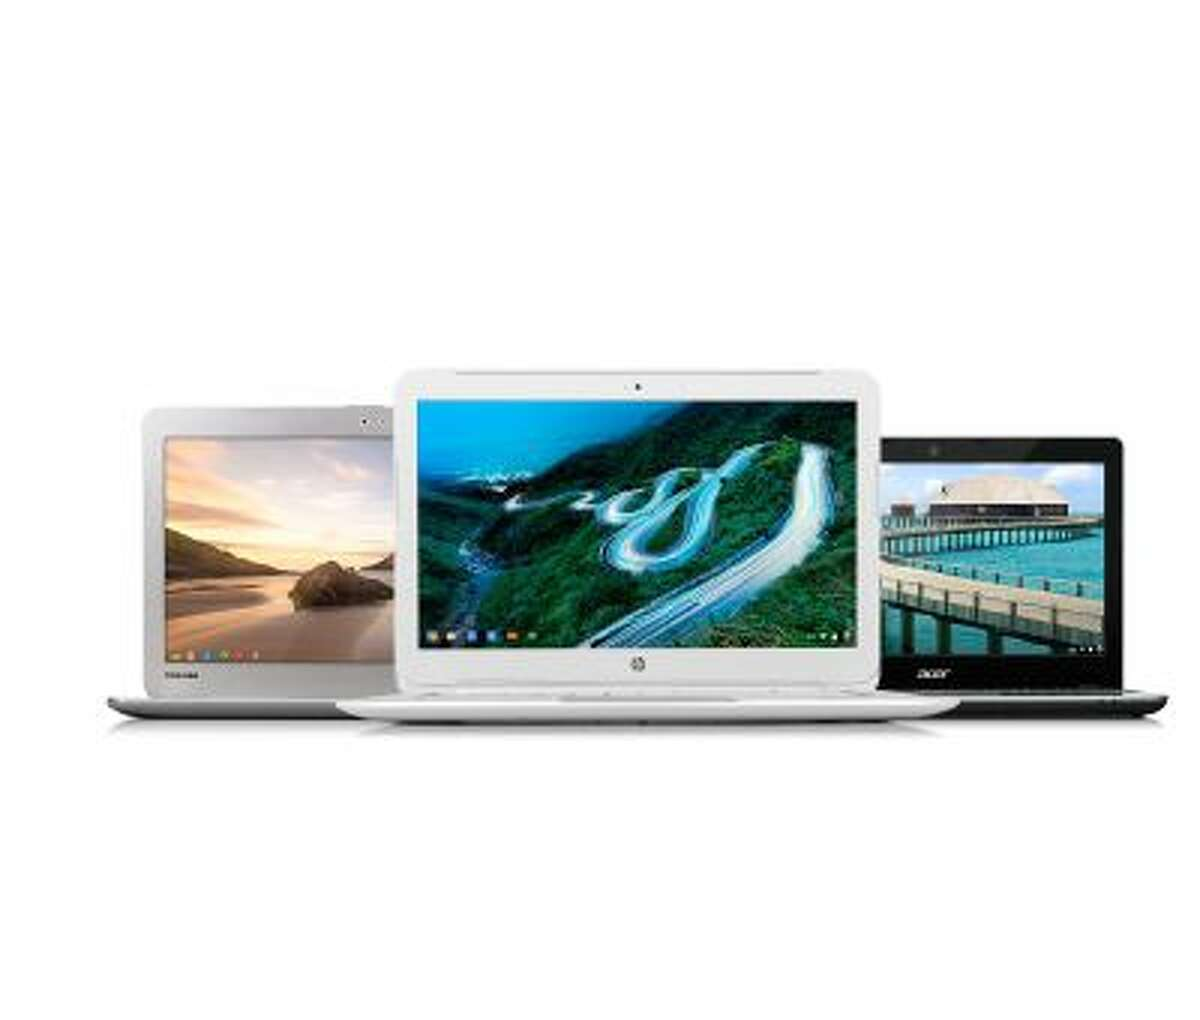 New Google Chromebooks. Asus, Toshiba, Acer and HP have all announced new Chromebook computers.